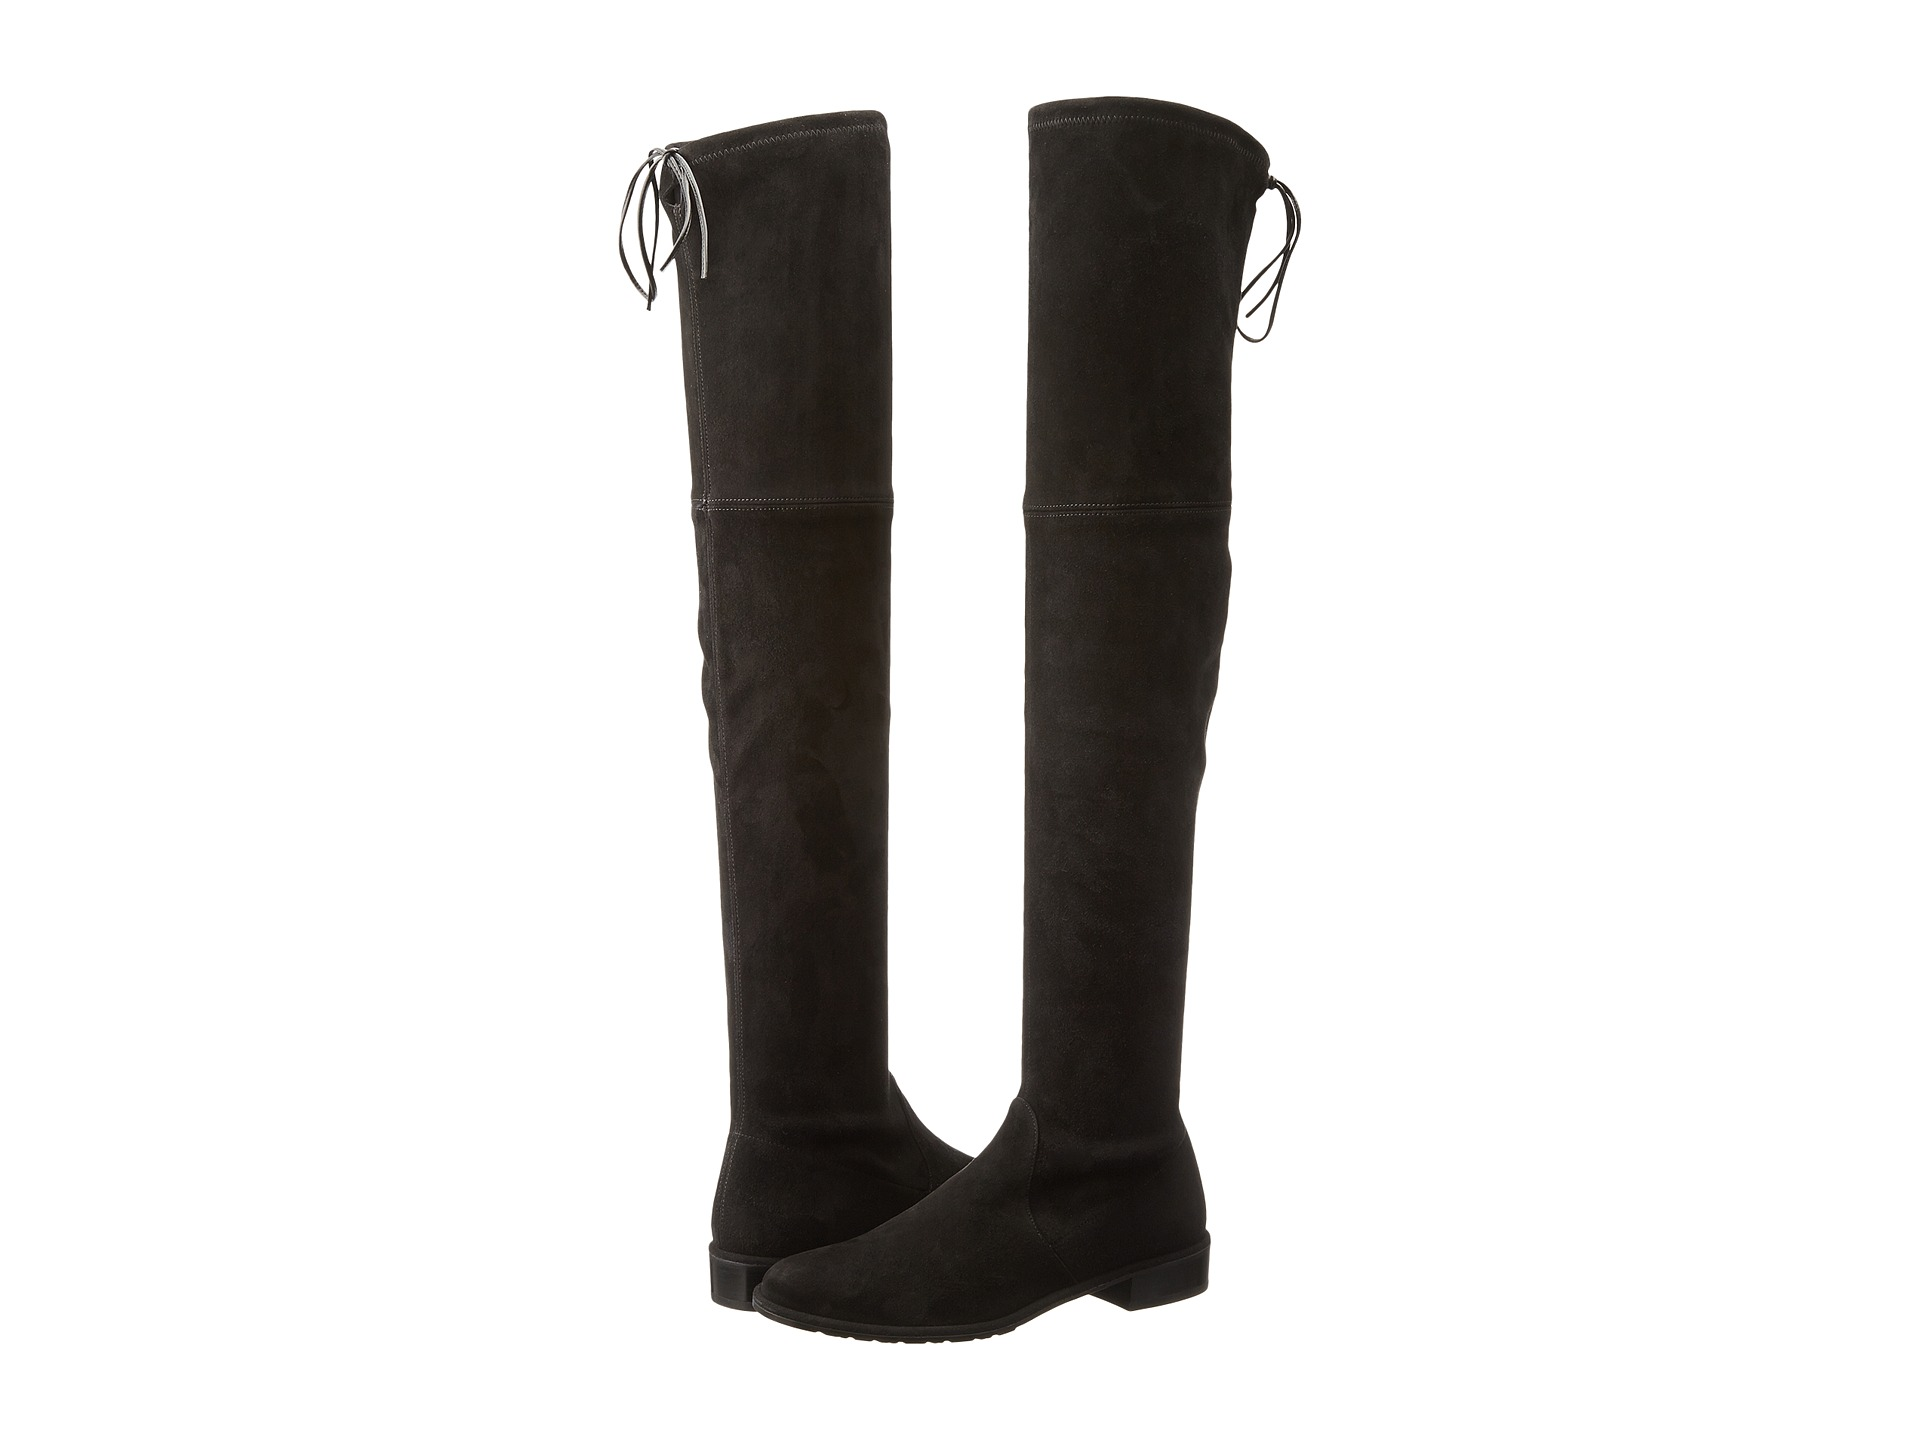 Knee Boots Cost